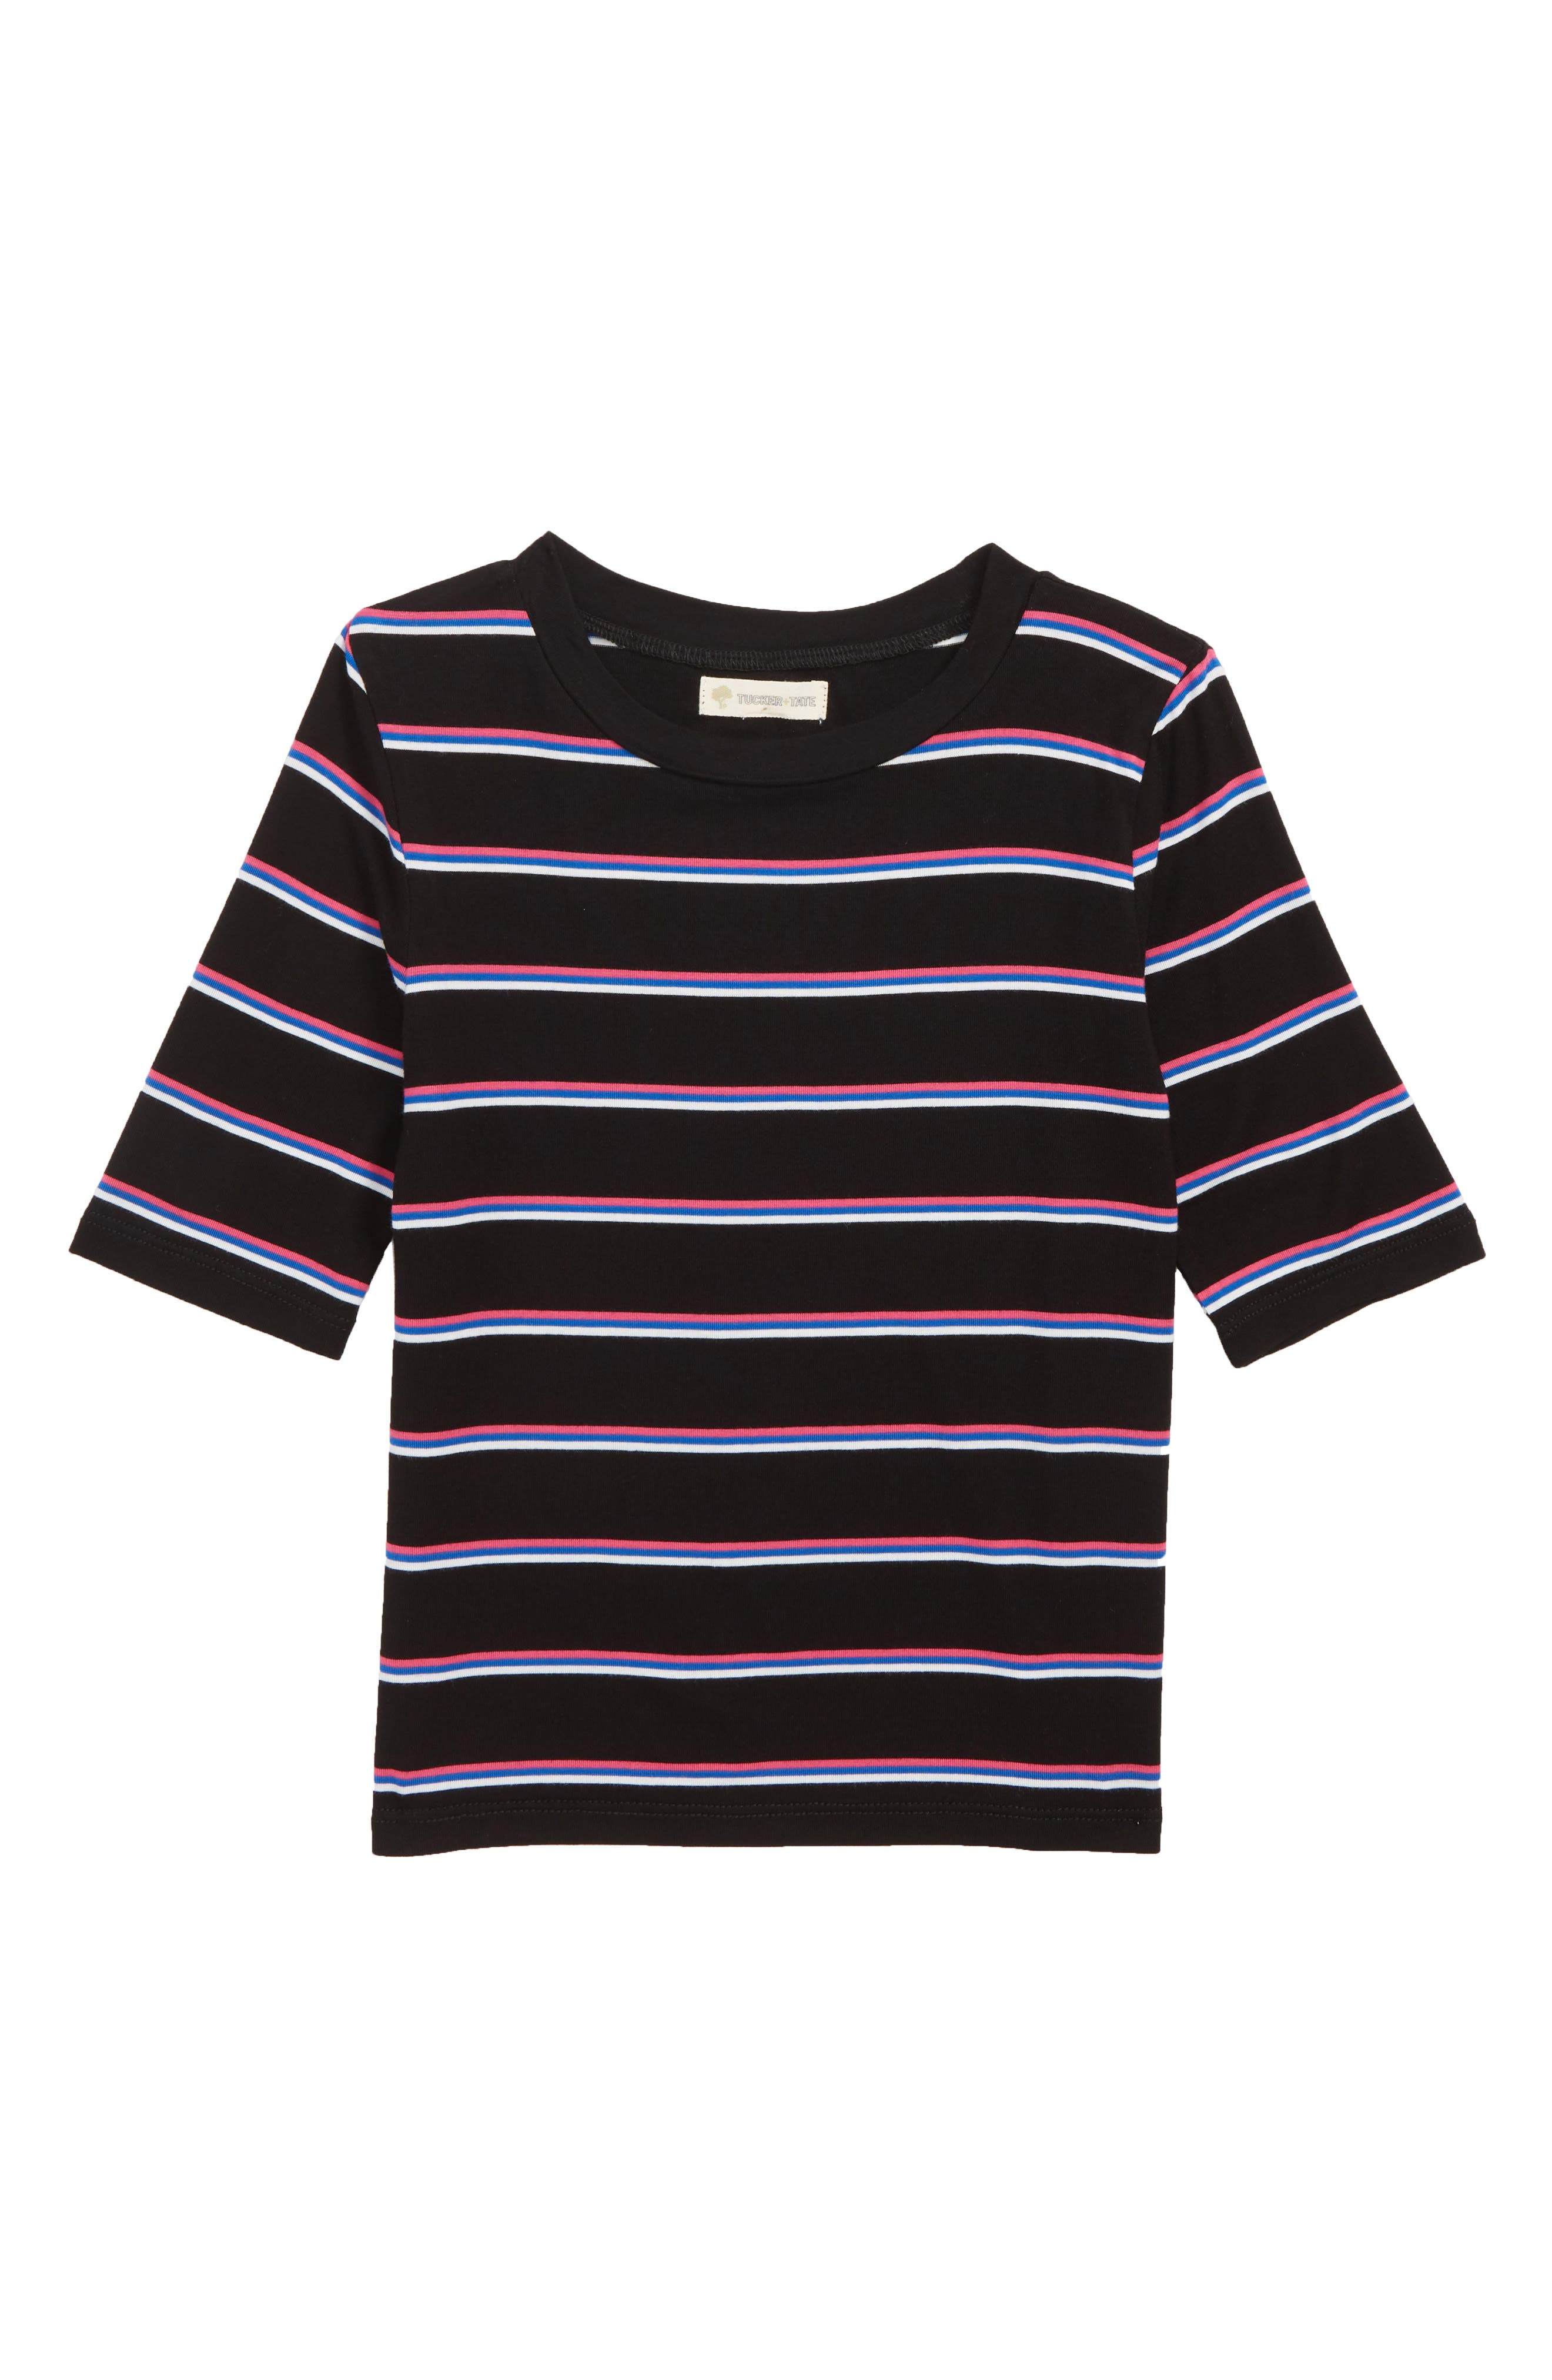 Stripe Tee,                         Main,                         color, BLACK MULTI STRIPE